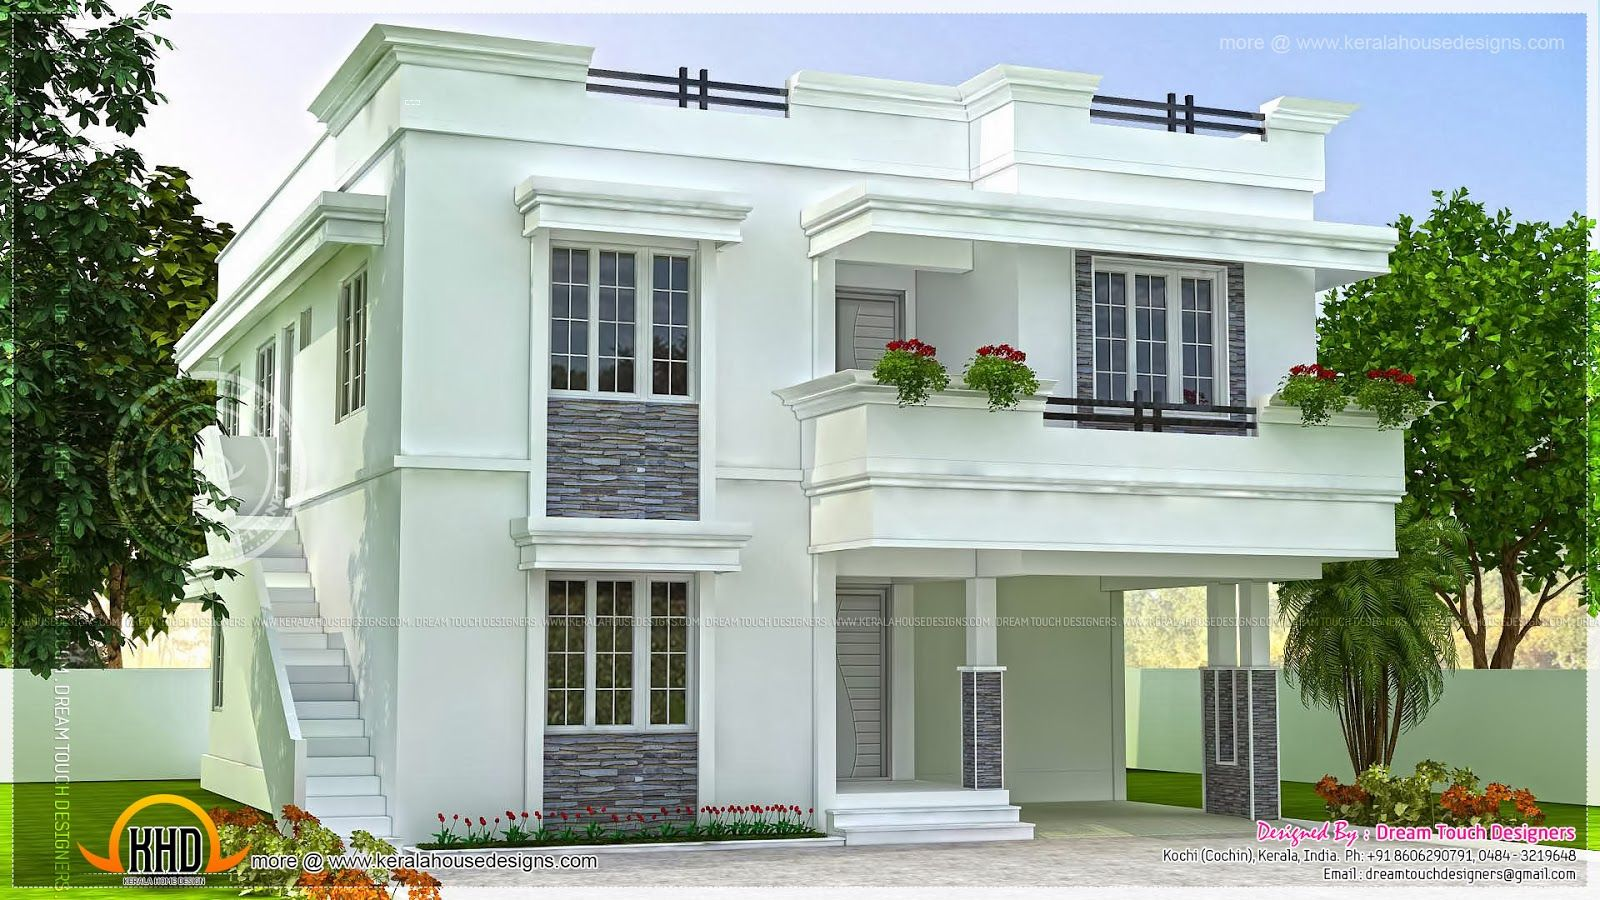 beautiful house designs - rent on flat in noida #flatonrent #renting THKDMTB